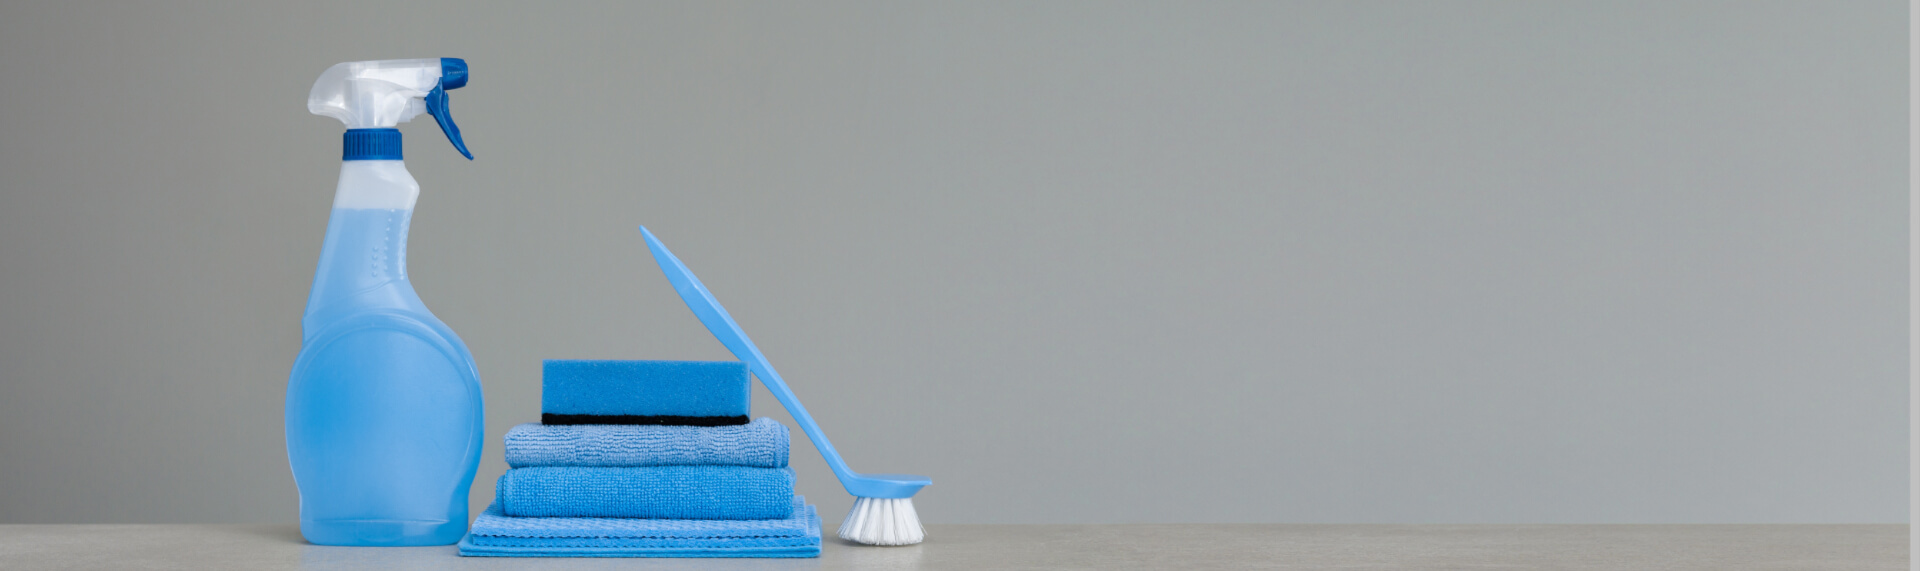 Cleaning items against a gray background